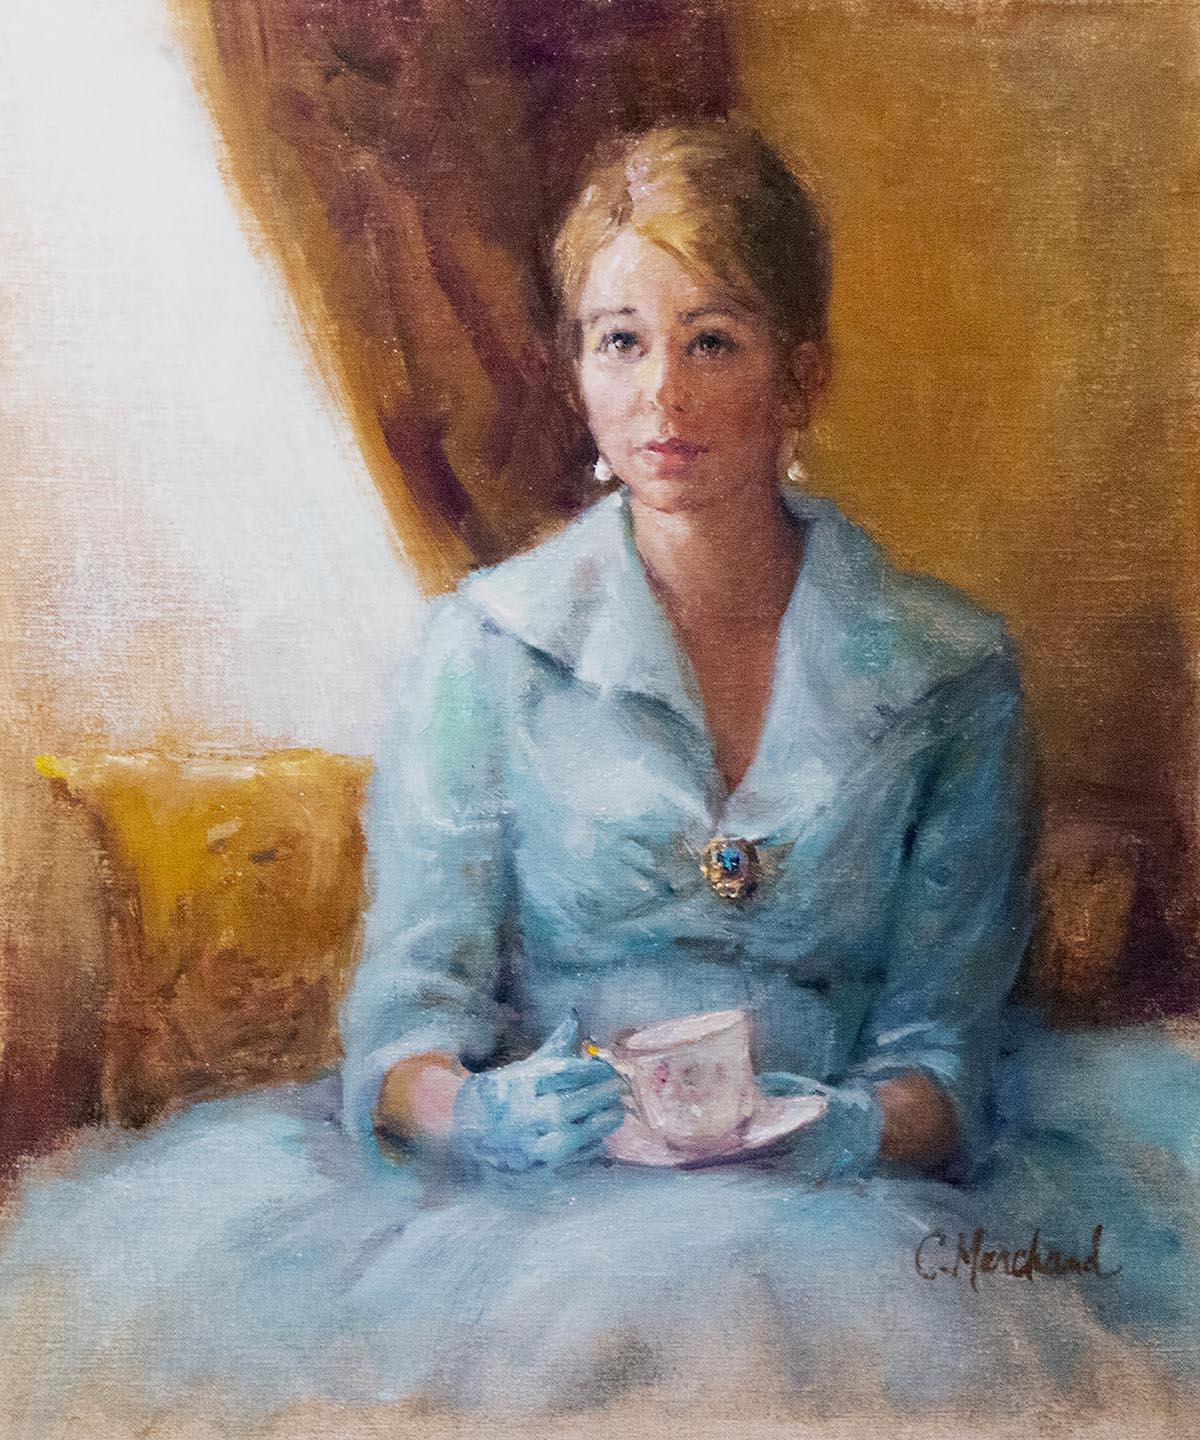 A Cup of Hope - Catherine Marchand